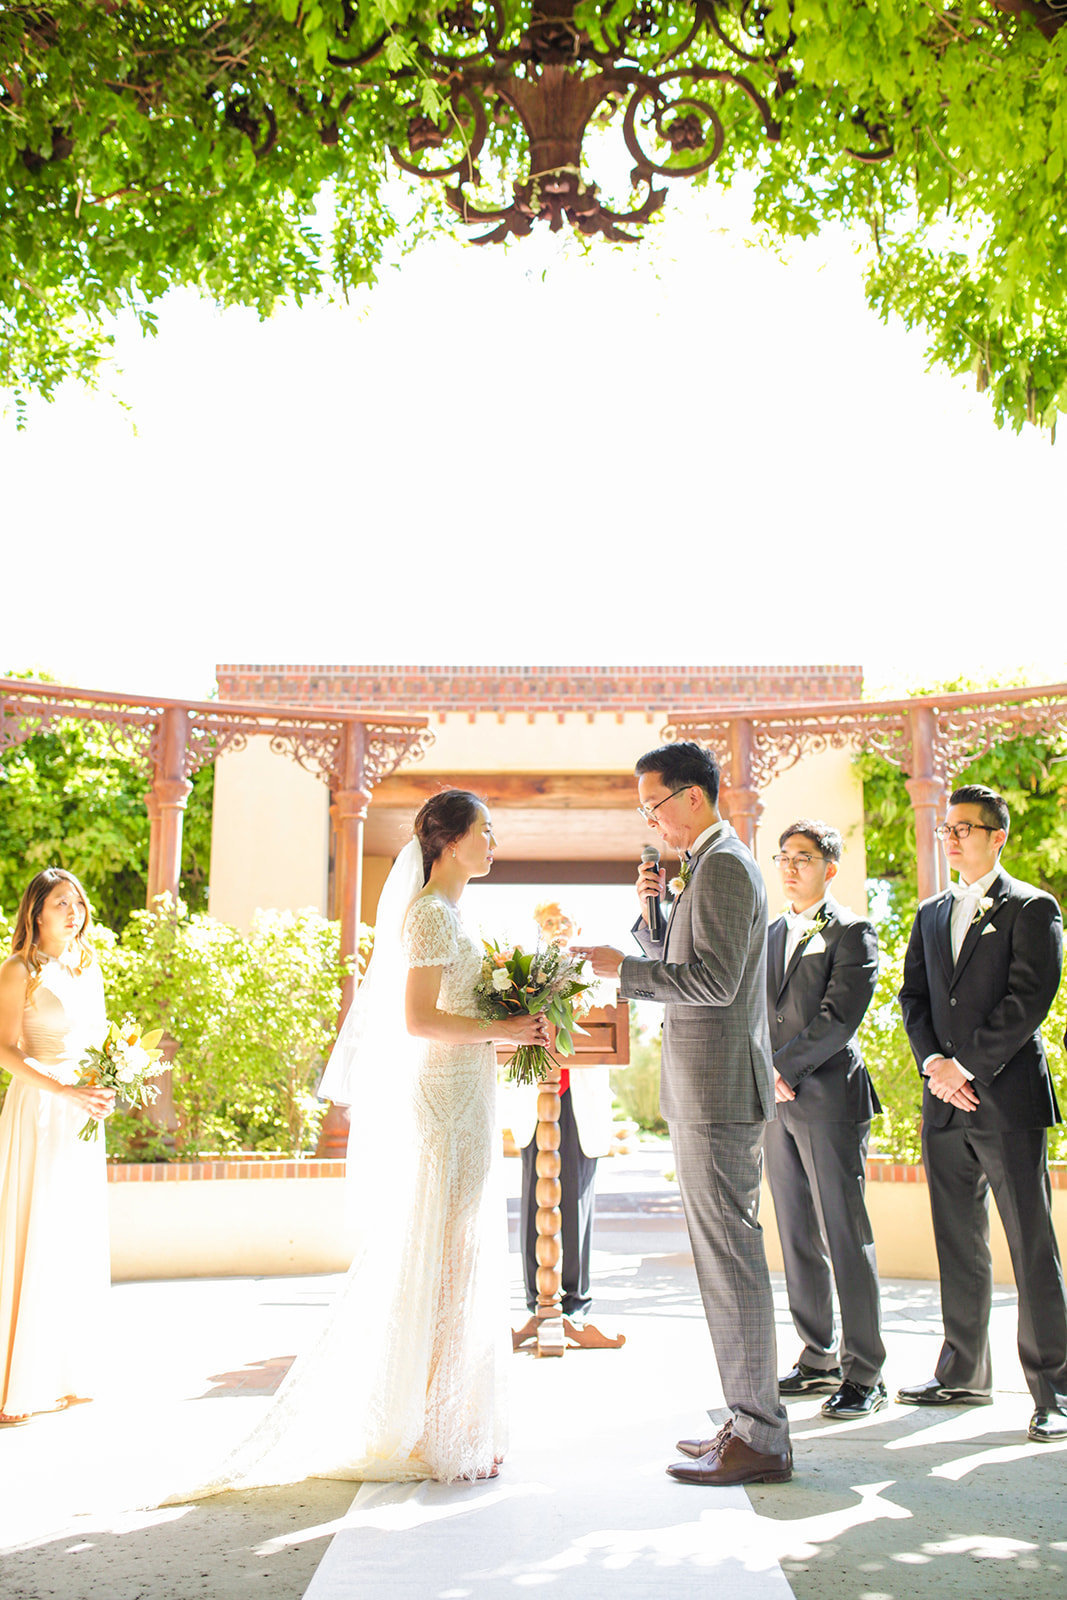 Albuquerque Wedding Photographer_Hotel Albuquerque_www.tylerbrooke.com_Kate Kauffman_100